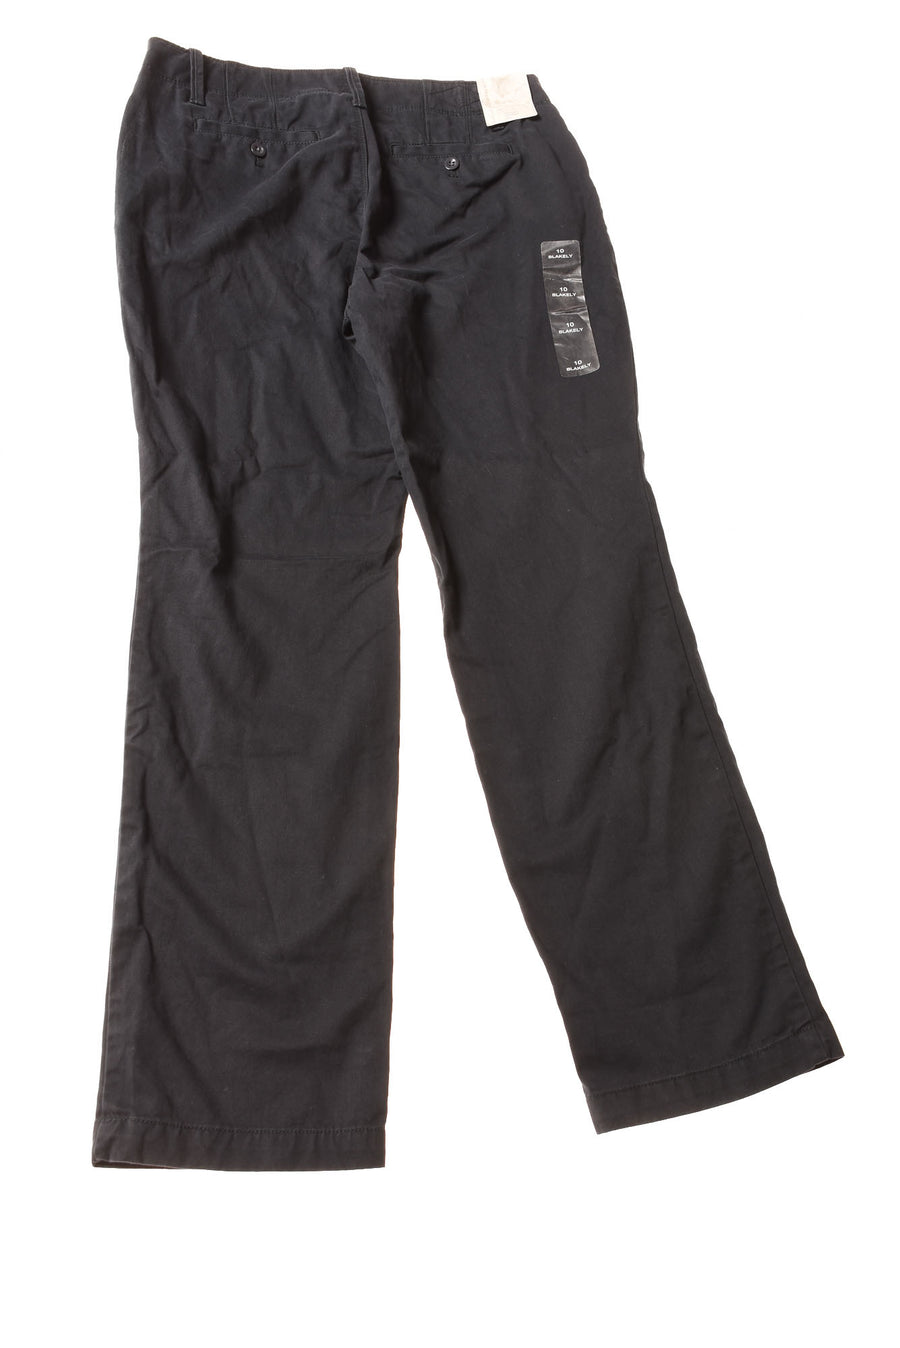 NEW Eddie Bauer Women's Slacks 10 Blue